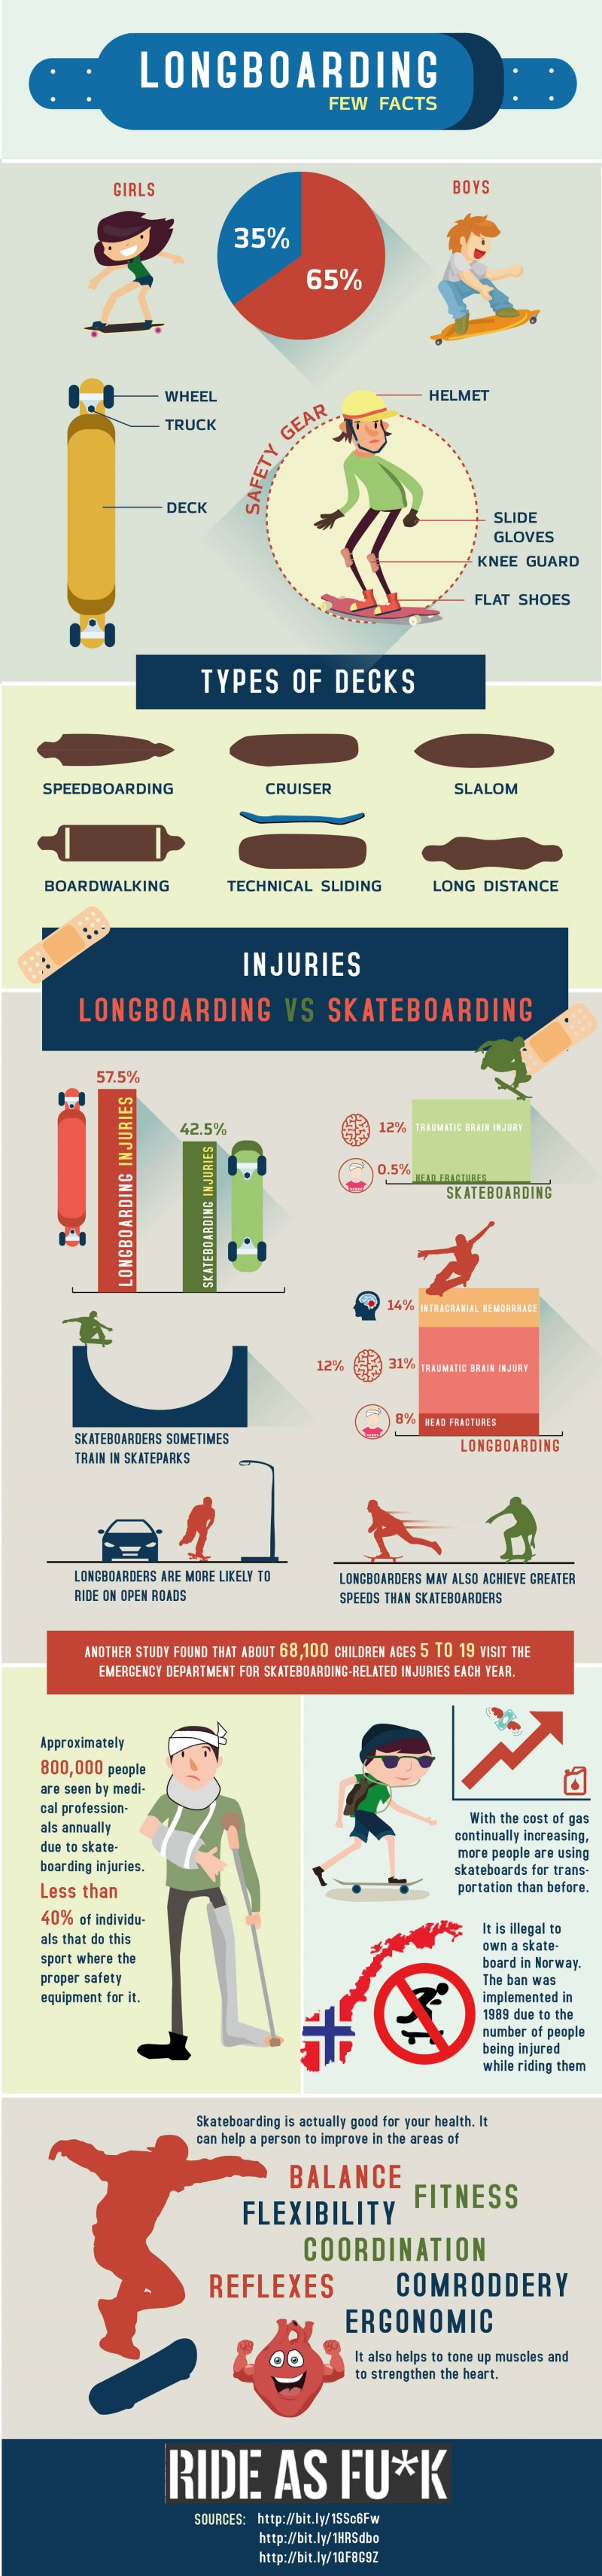 Longboarding Infographic Small